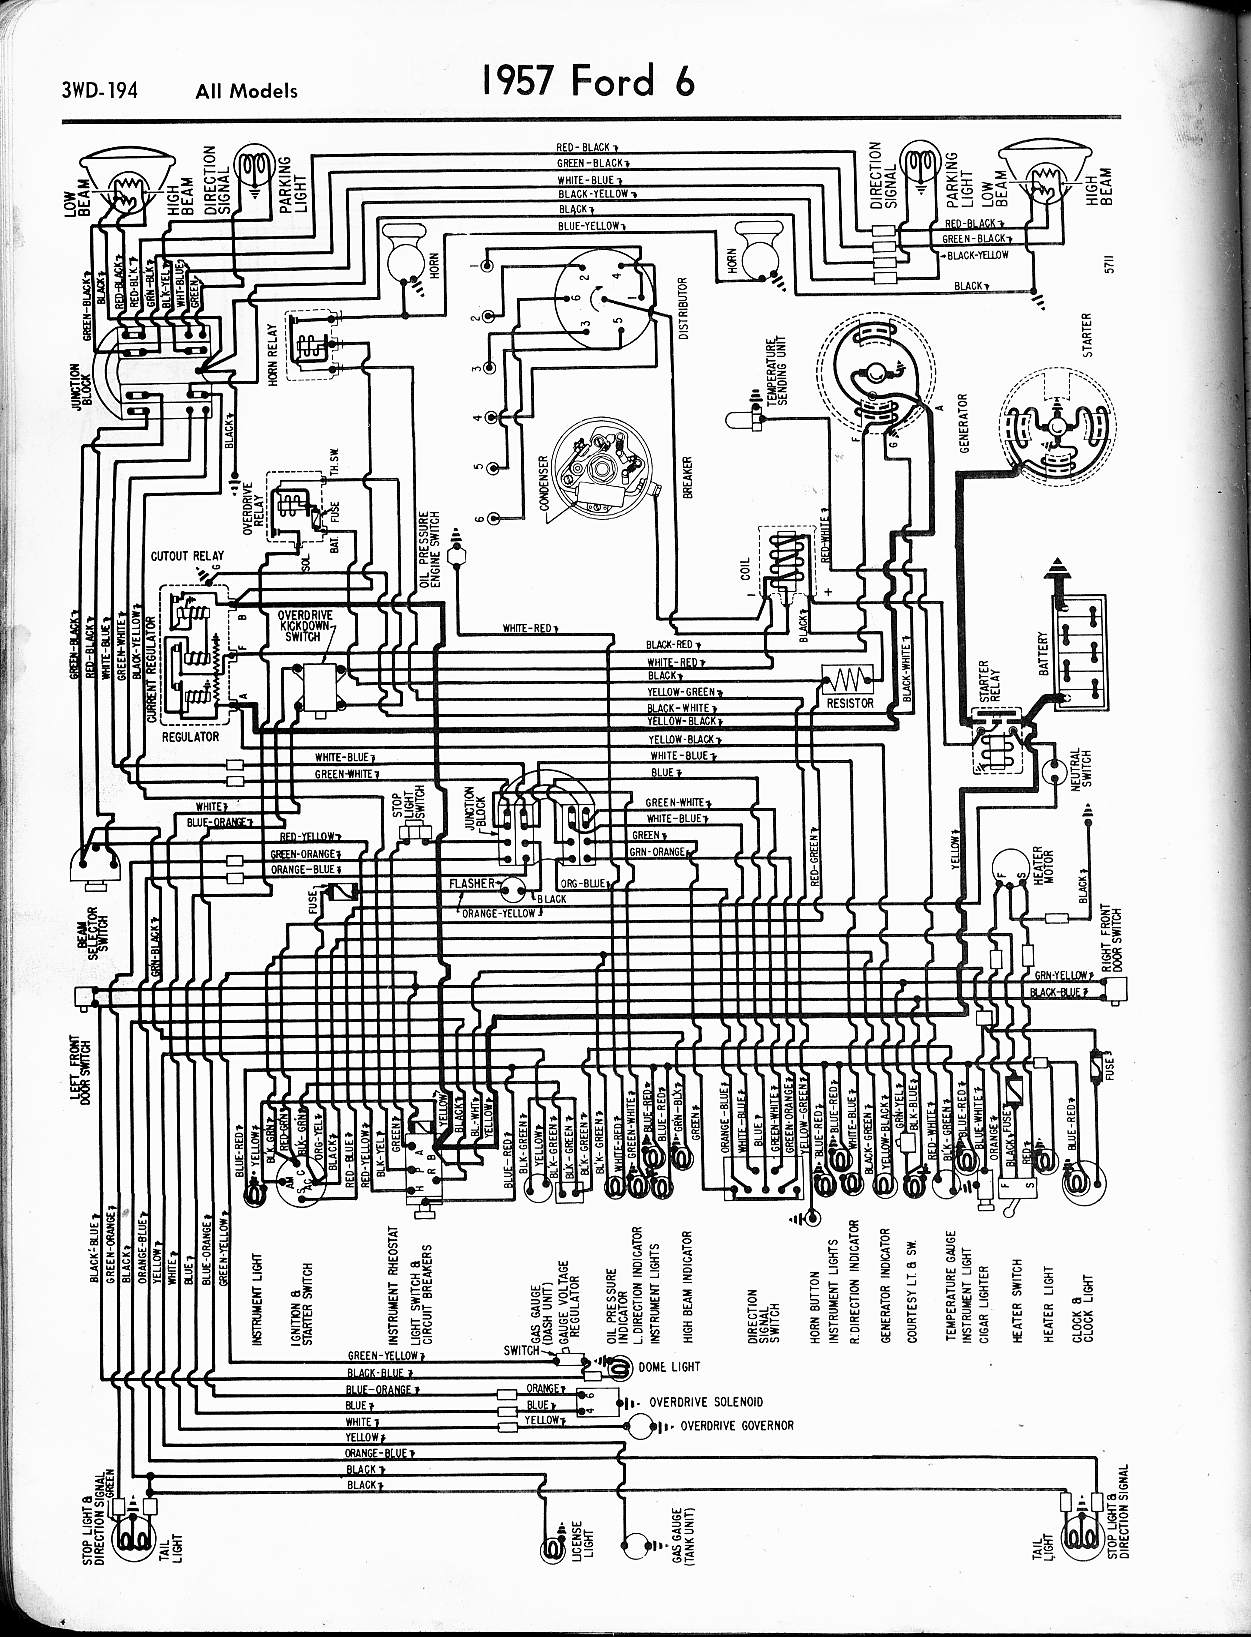 MWire5765 194 1955 ford wiring diagram 2014 dodge 2500 wiring diagram \u2022 free 1979 ford escort wiring diagram at n-0.co